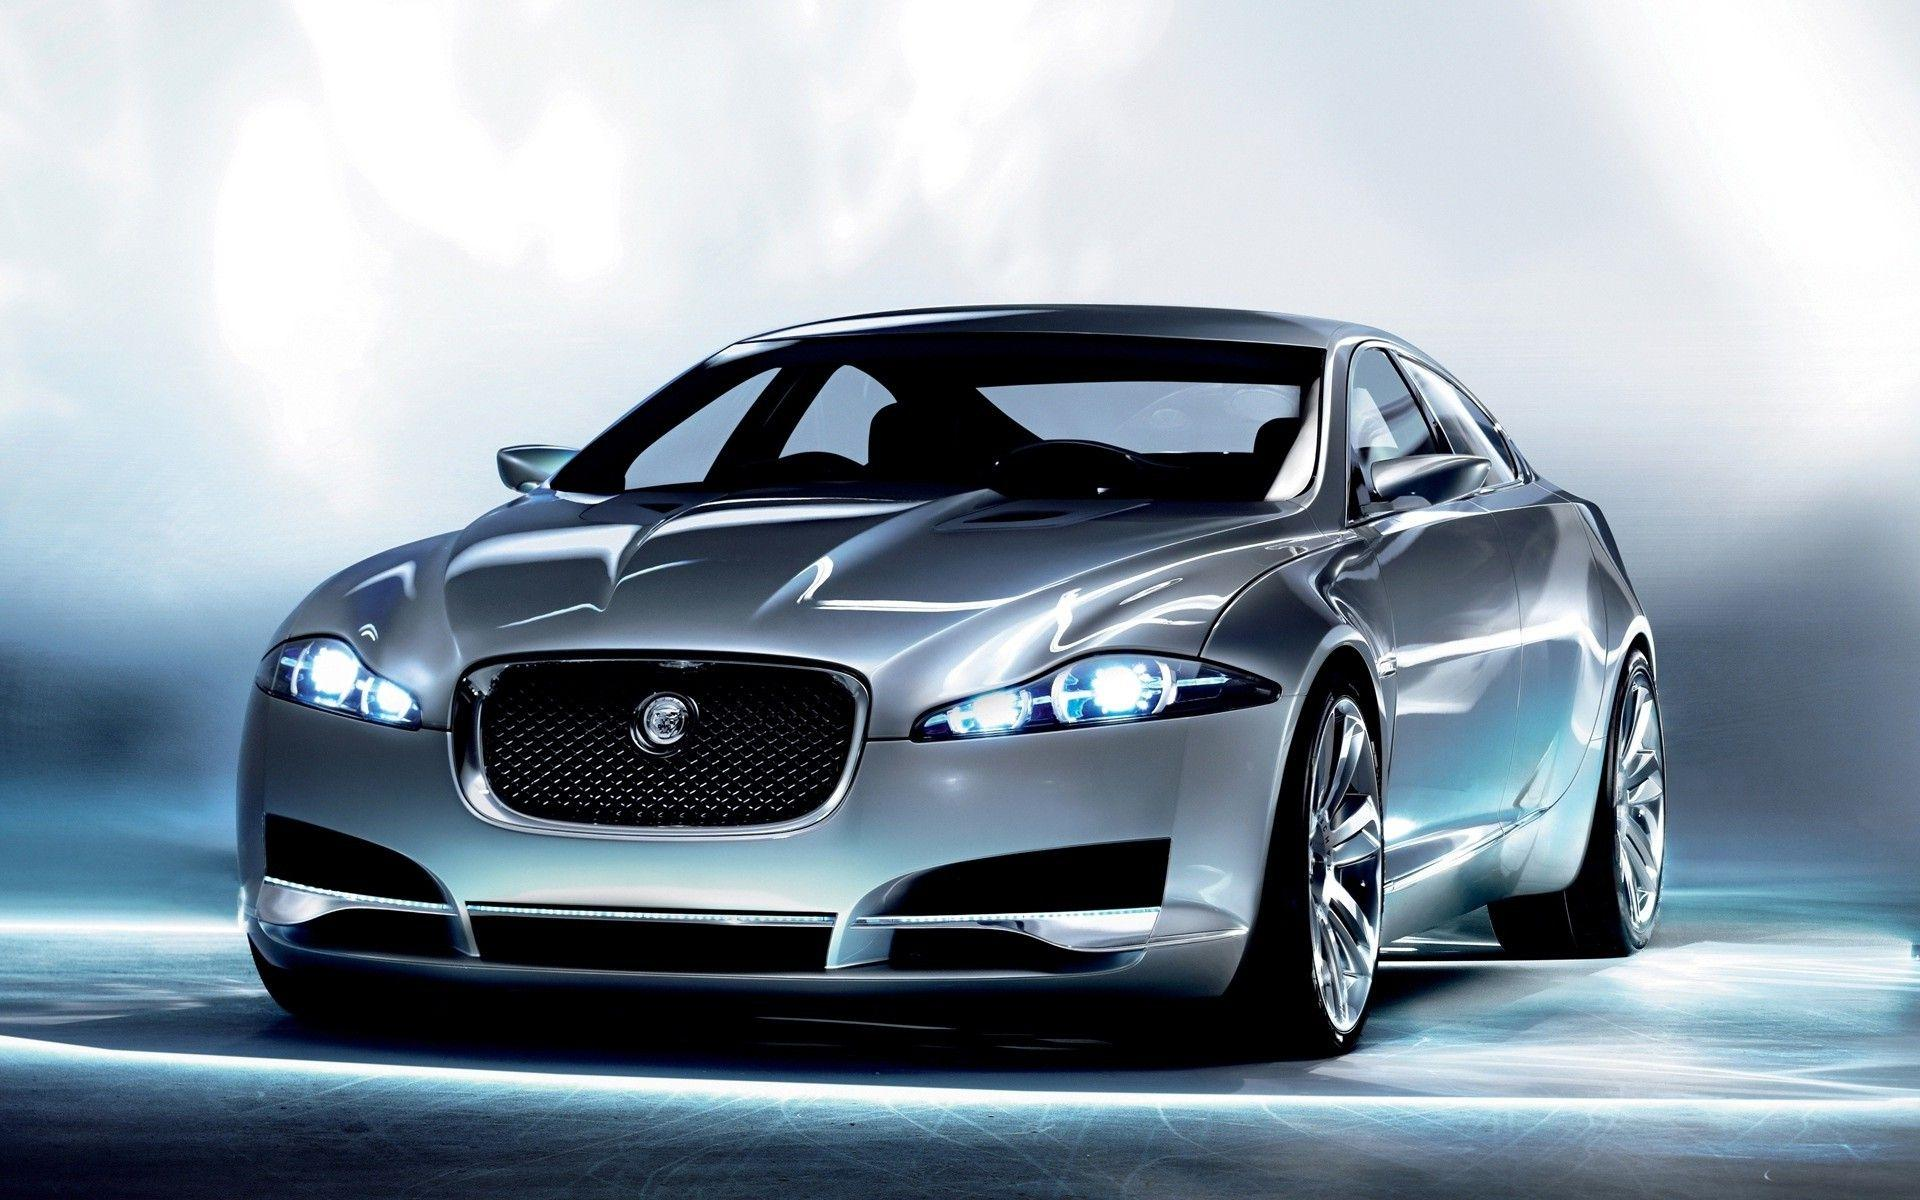 Jaguar Car Wallpaper Wallpapers High Quality: Jaguar XF Wallpapers